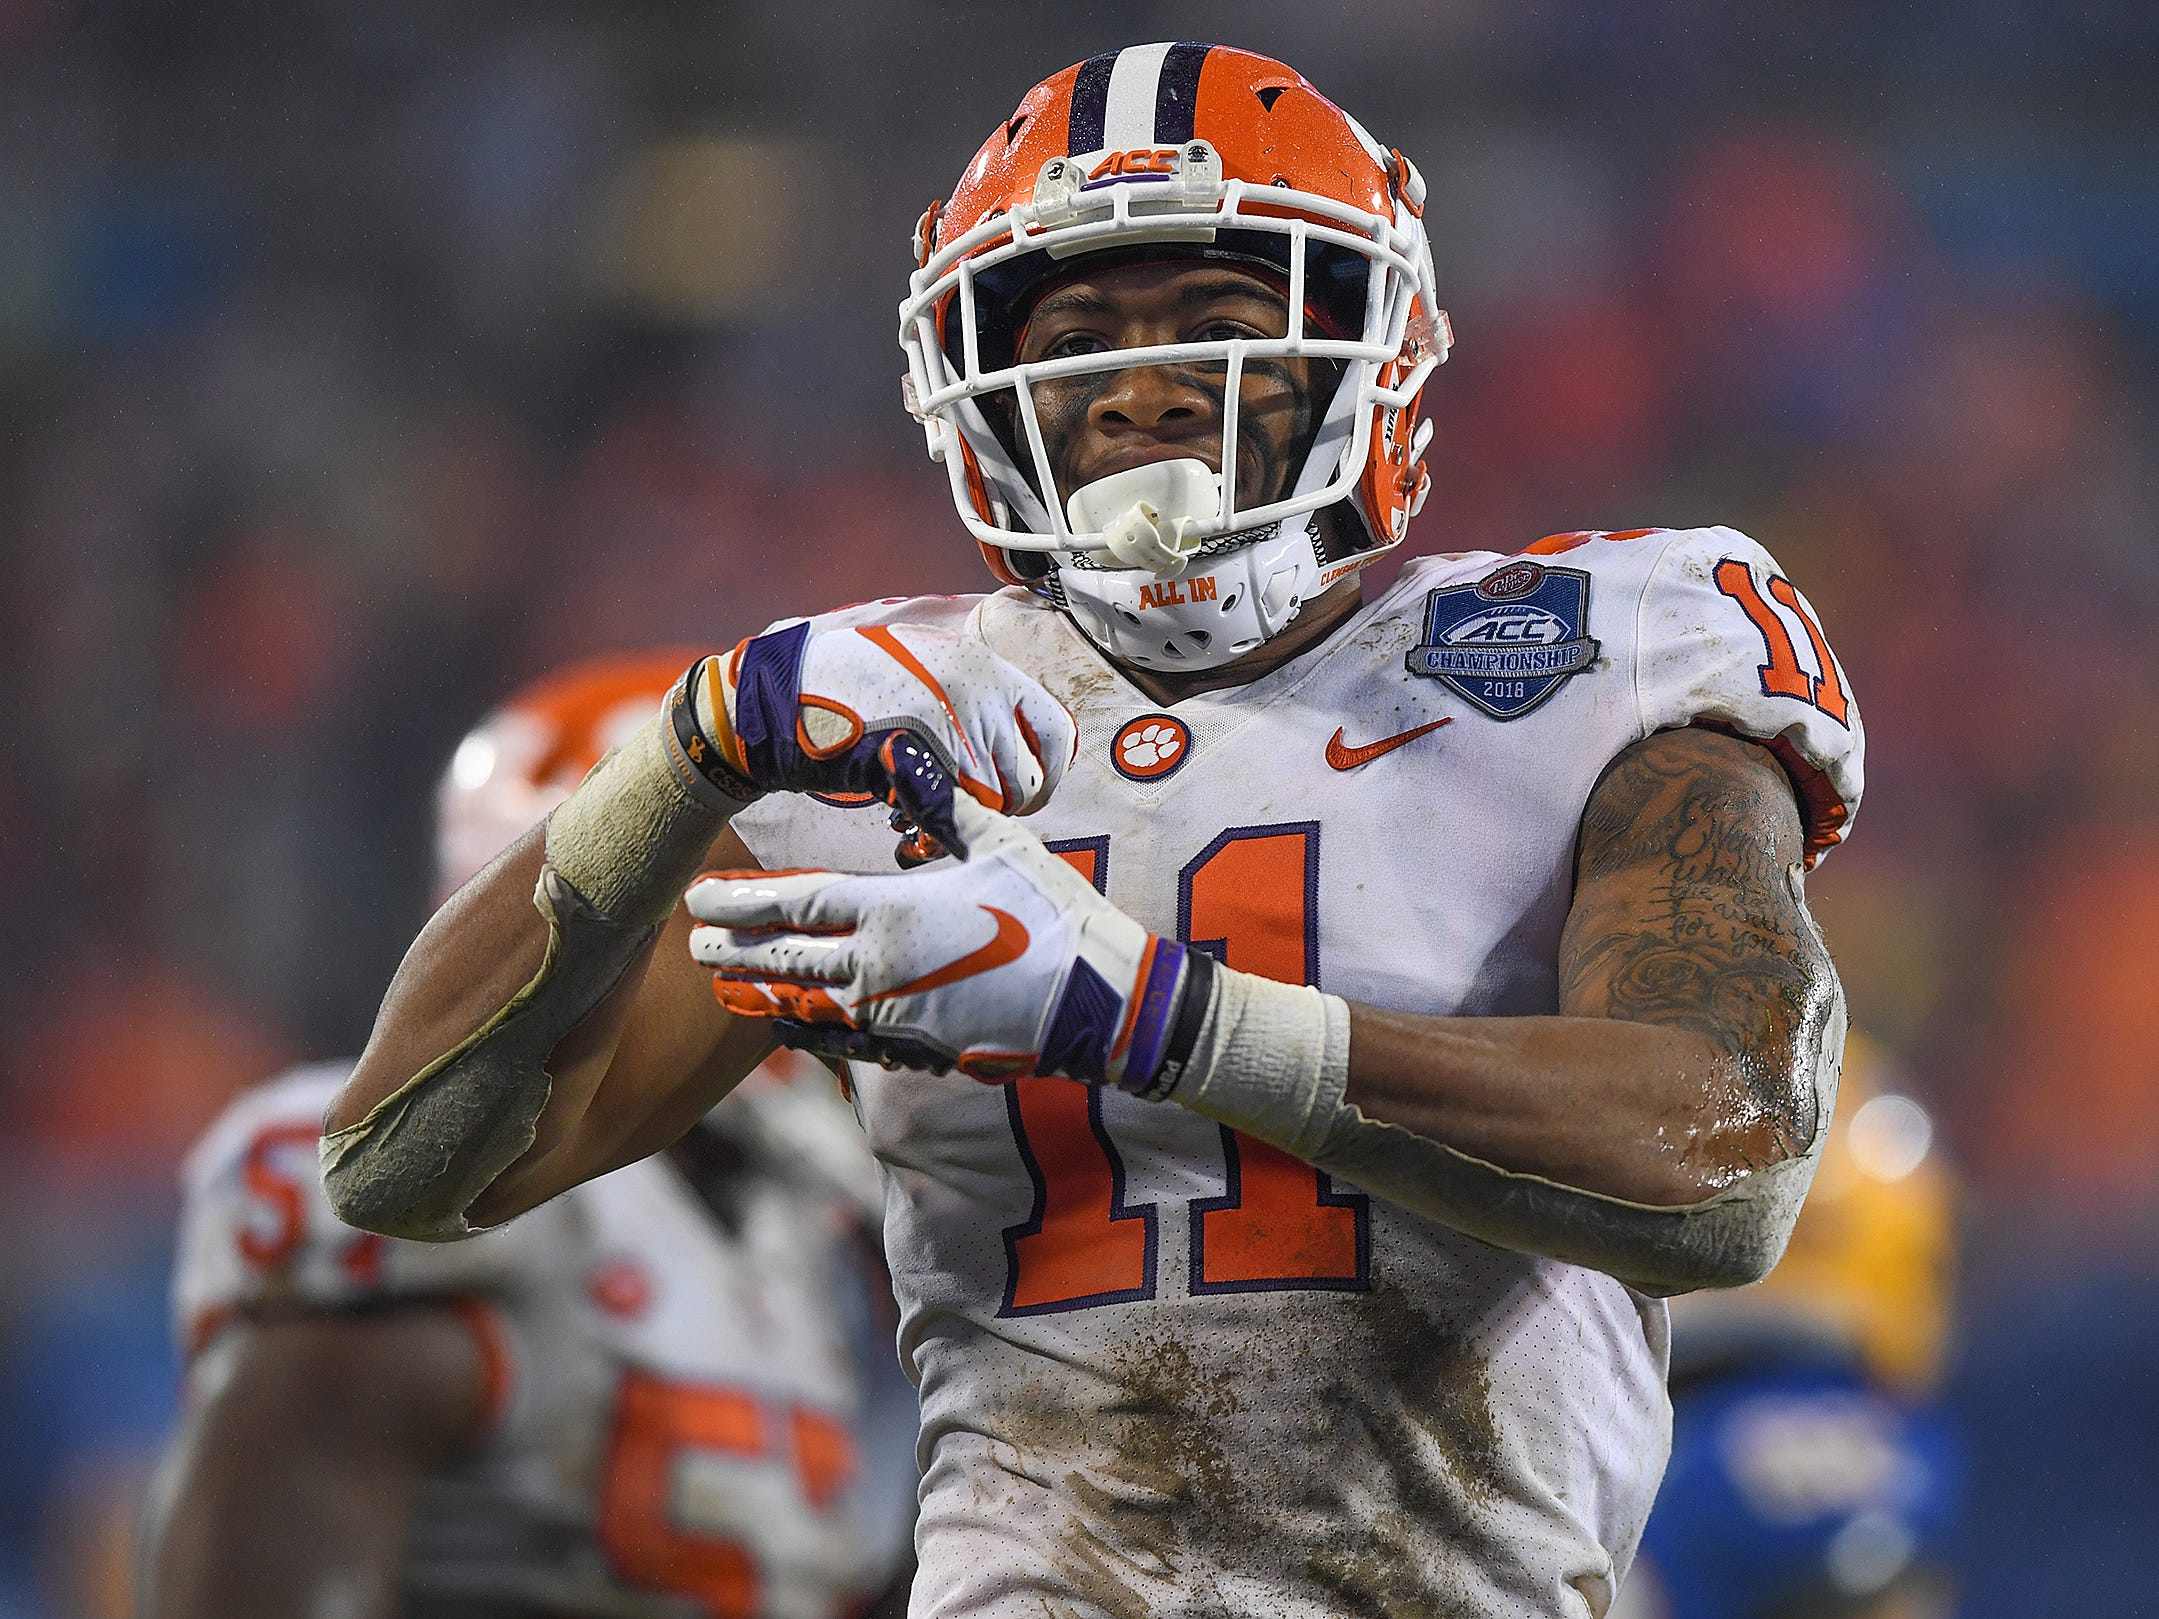 Clemson safety Isaiah Simmons (11) celebrates after a defensive stop against Pittsburgh during the 4th quarter of the Dr. Pepper ACC Championship at Bank of America Stadium in Charlotte, N.C. Saturday, December 1, 2018.